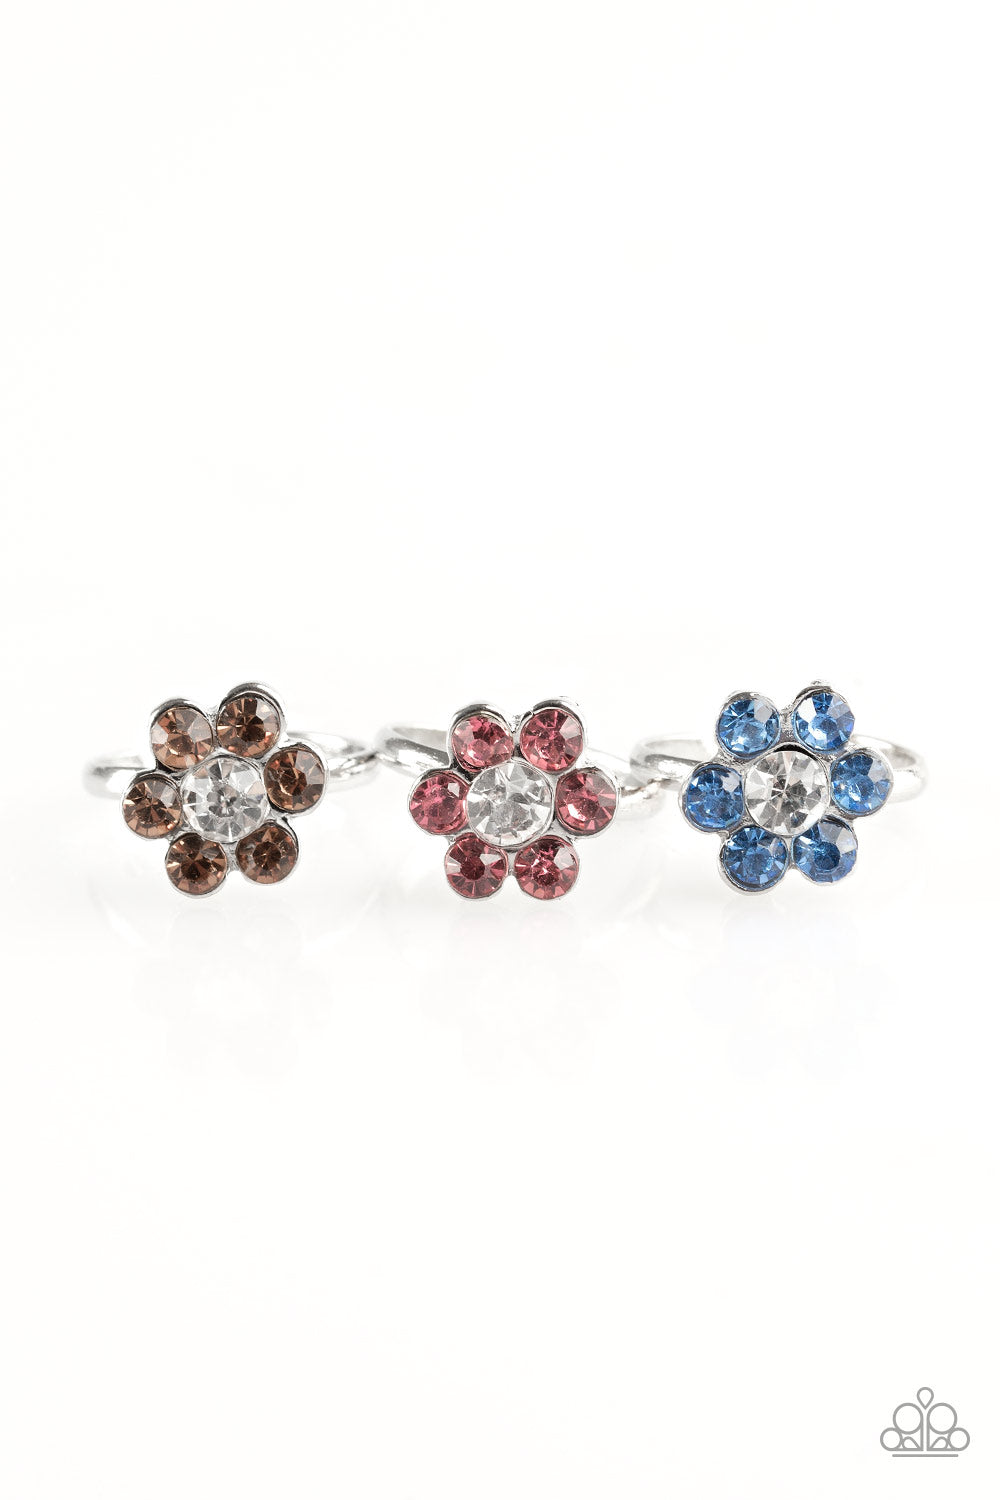 Gemstone Flower Rings - Paparazzi Starlet Shimmer - Pink Dragon Jewels